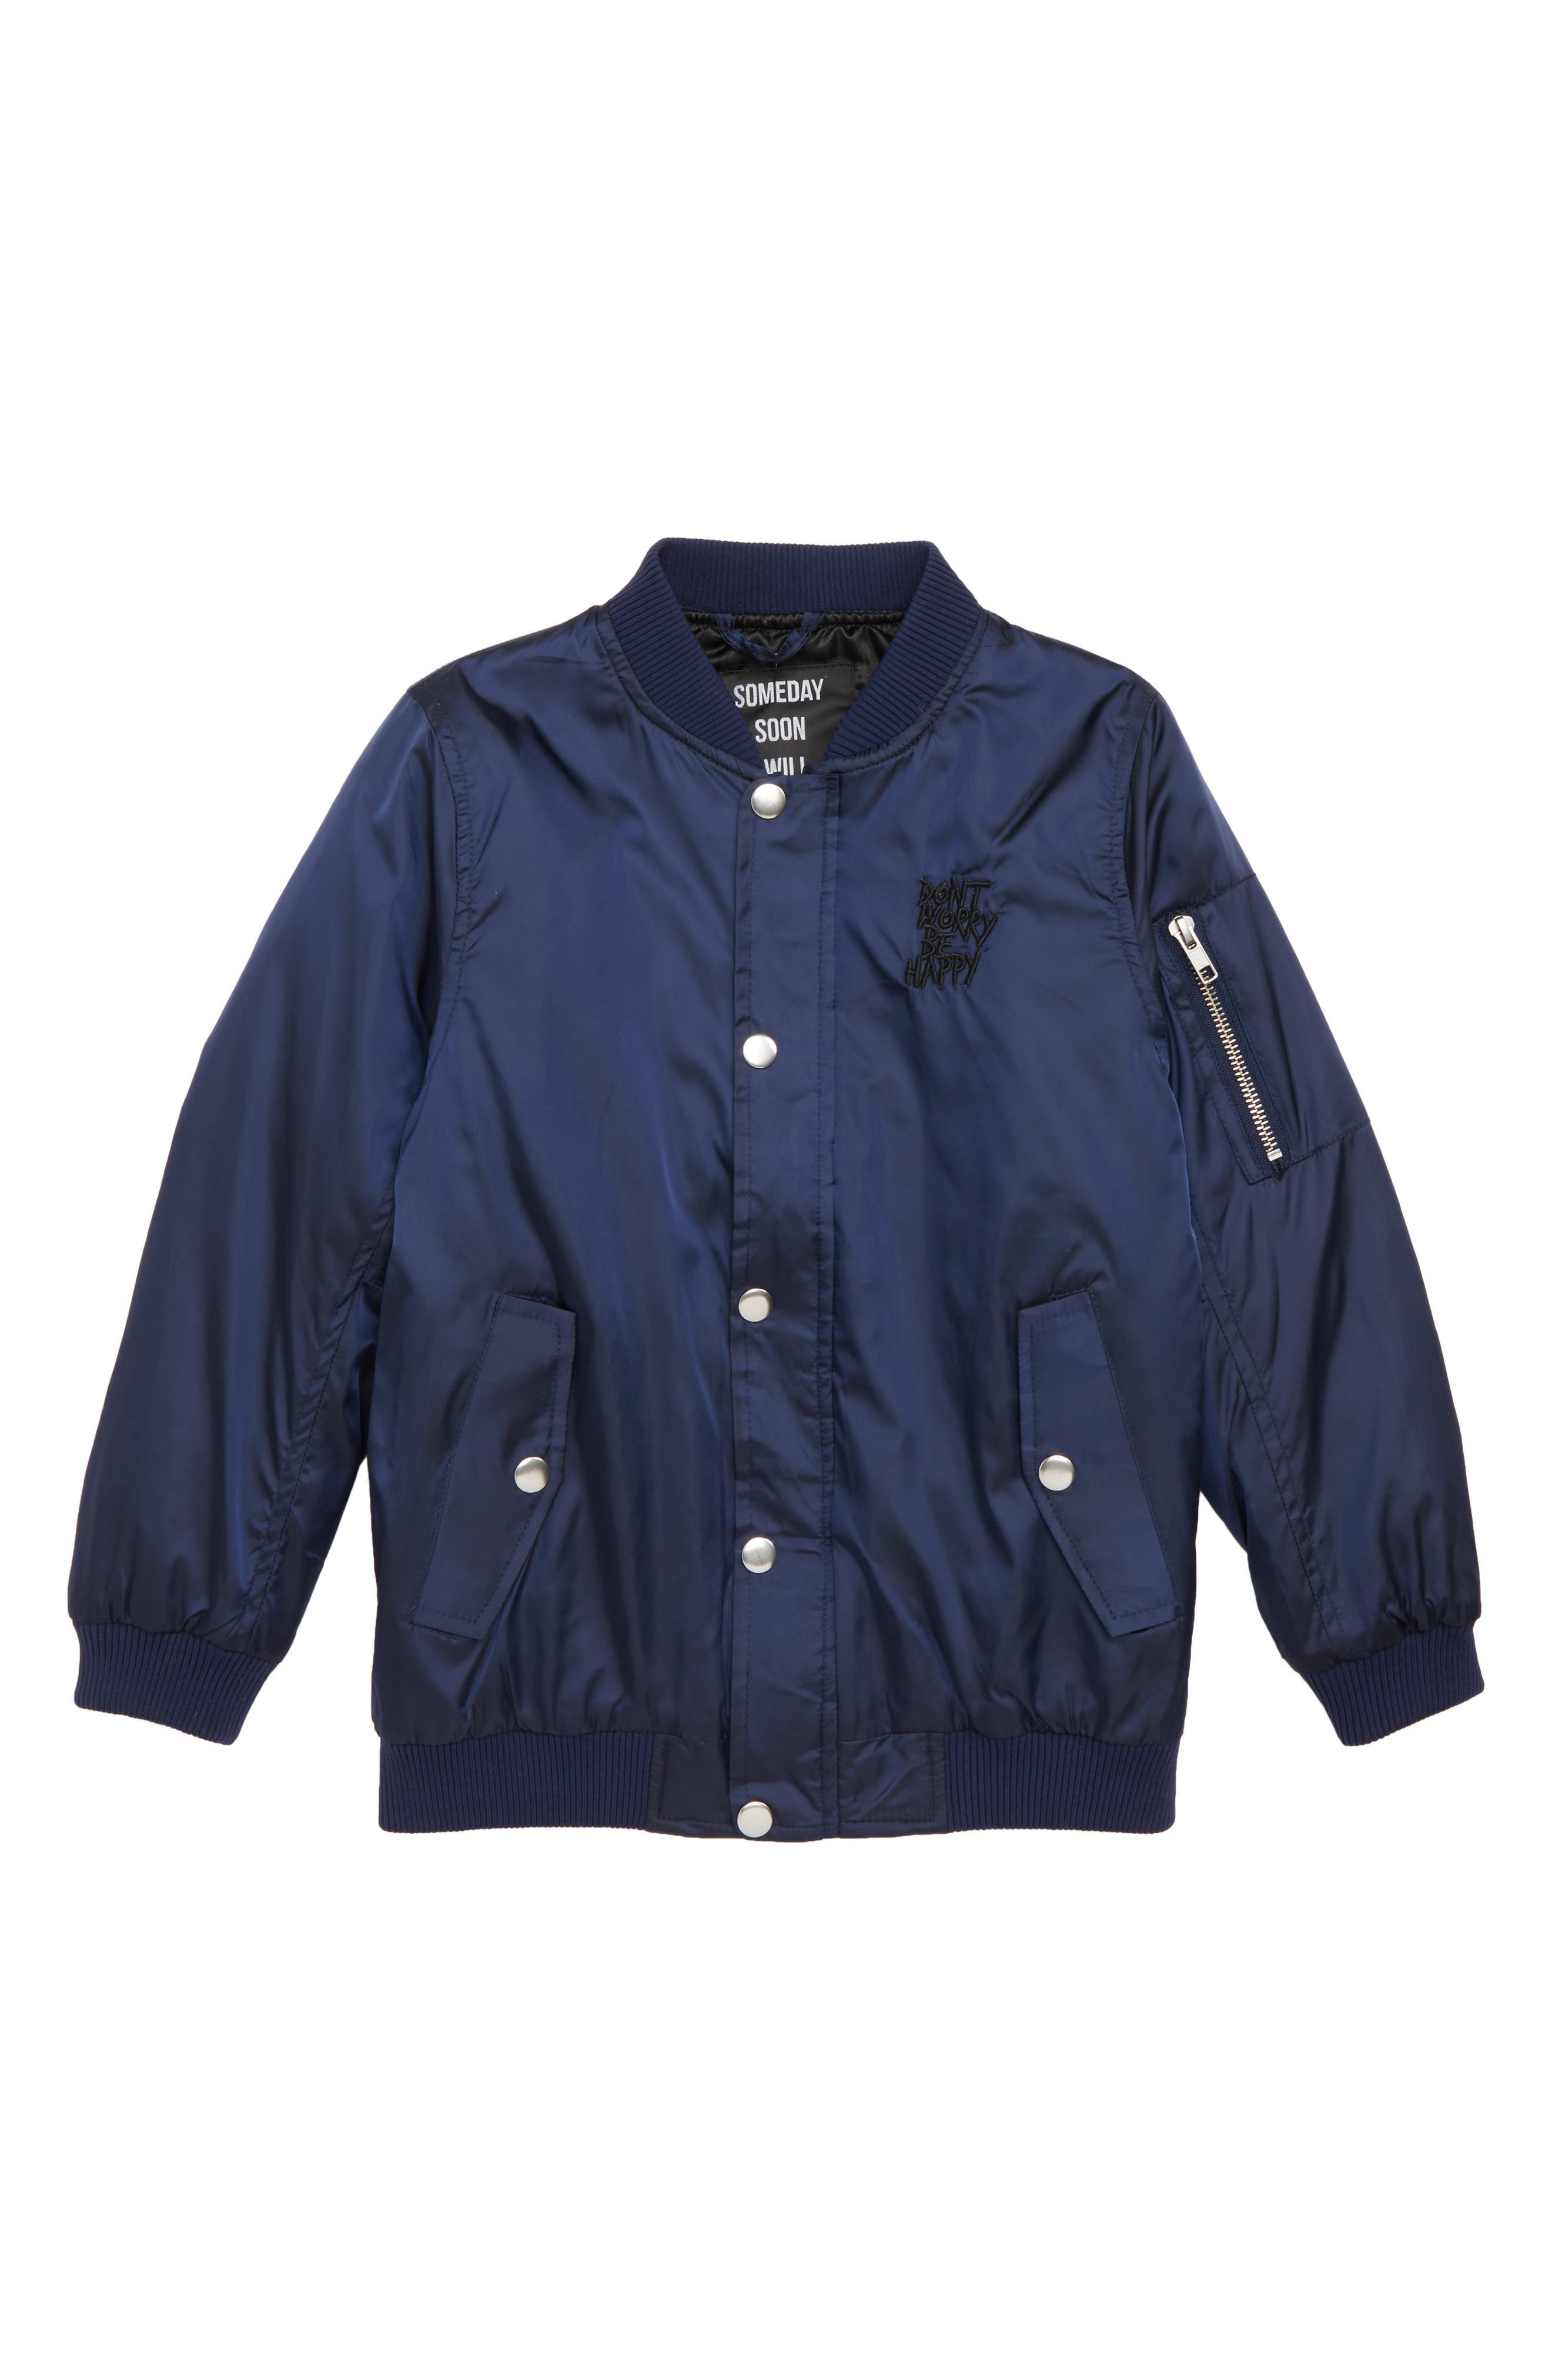 Someday Soon Perry Jacket (Toddler Boys & Little Boys)